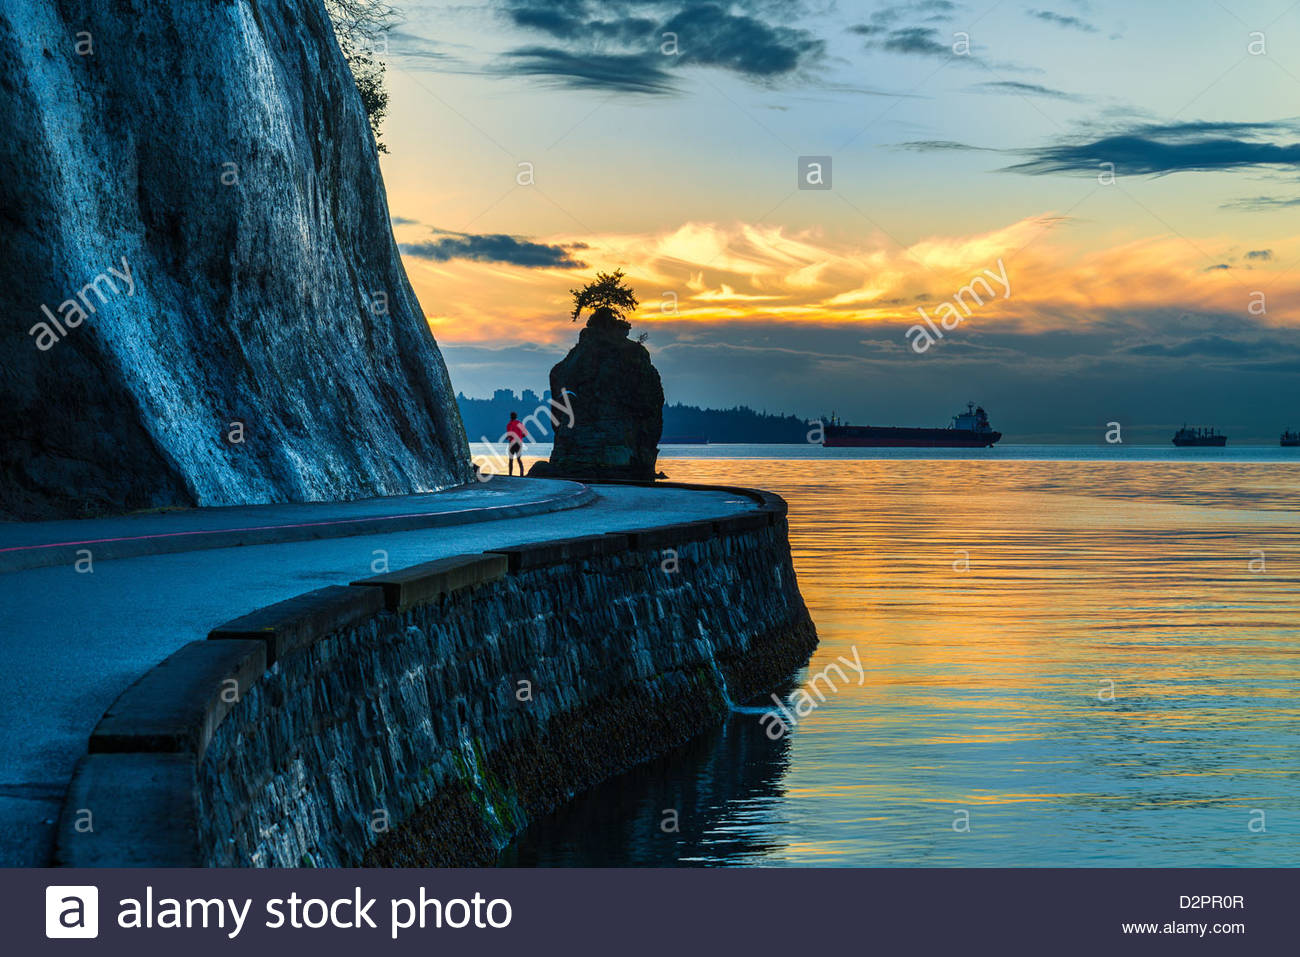 Male jogger passes Siwash Rock, on Stanley Park seawall at sunset, Vancouver, Britsih Columbia, Canada - Stock Image